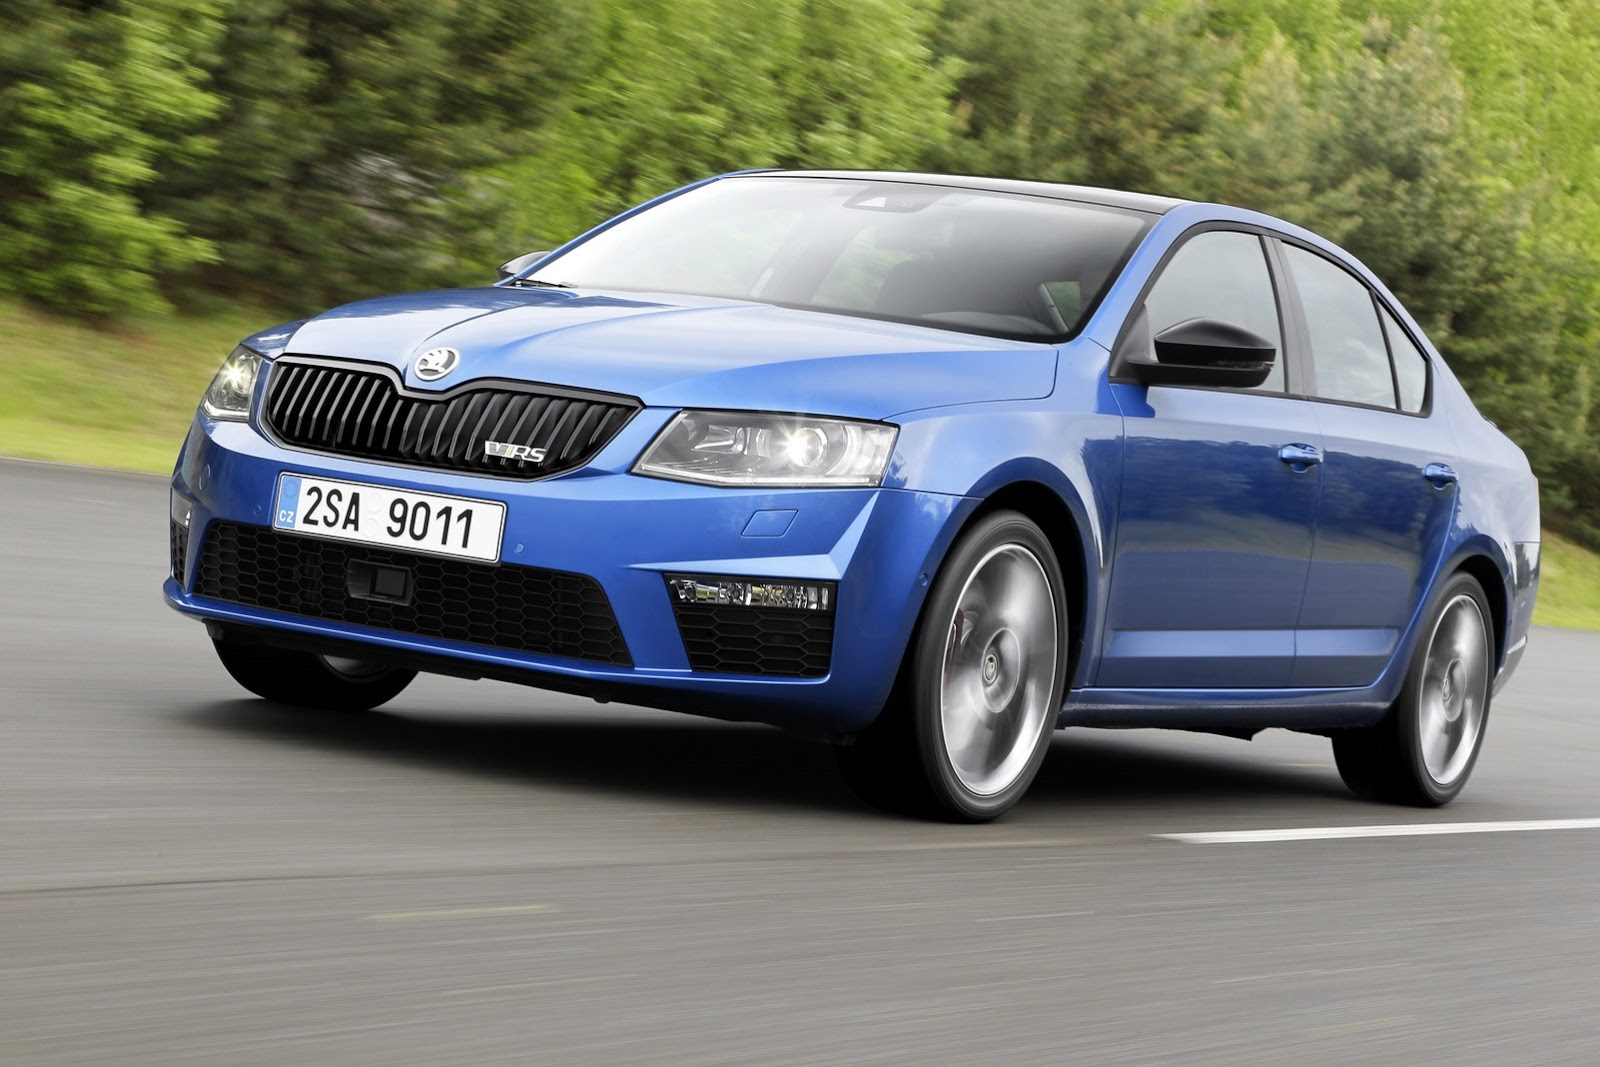 2014 Skoda Octavia Combi RS photo - 2